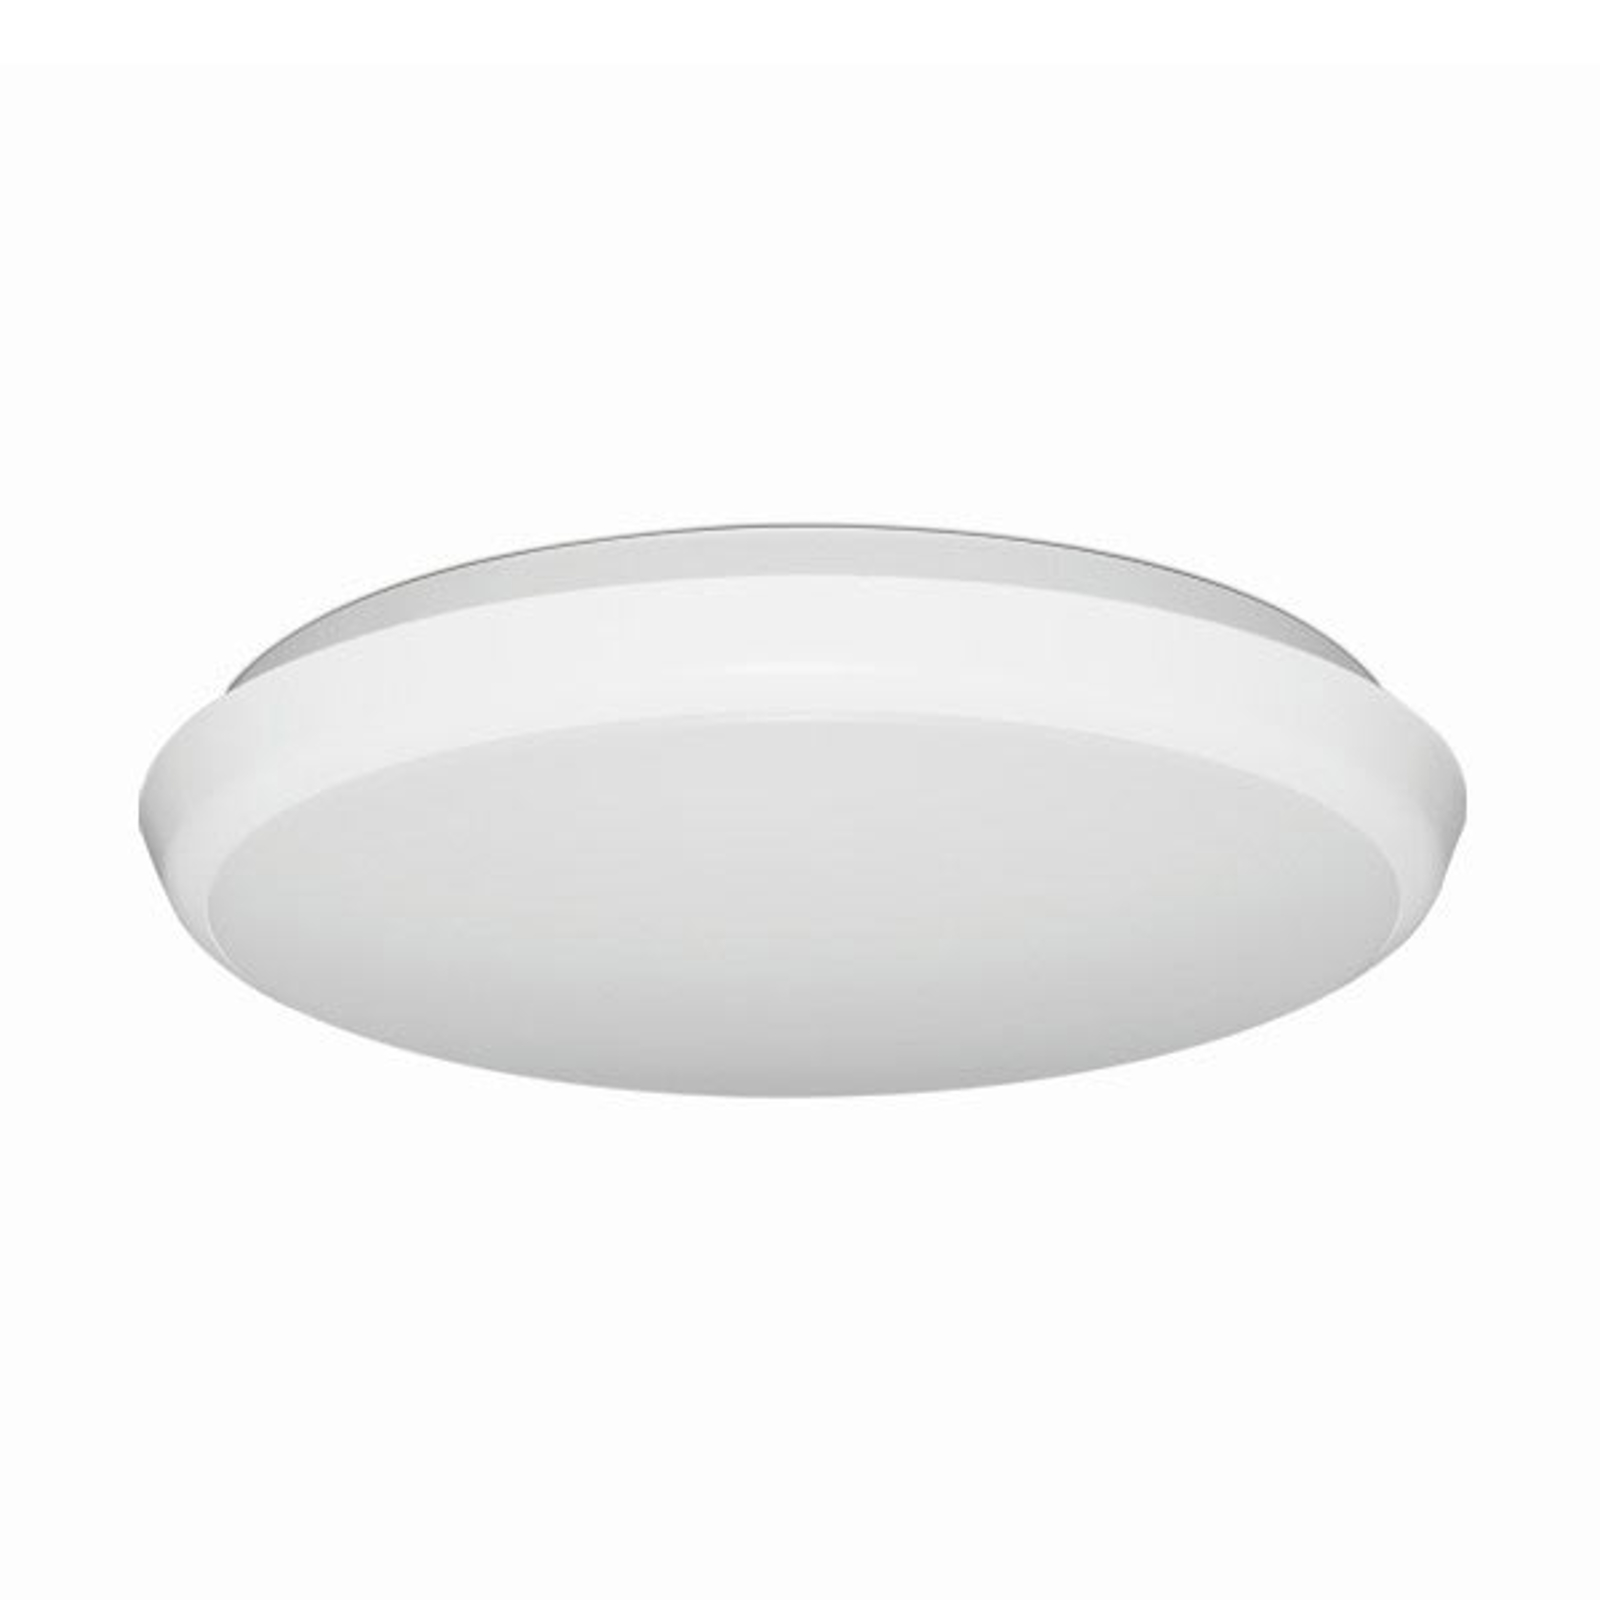 Acquista Zirra - plafoniera LED dimming, con sensore, IP54